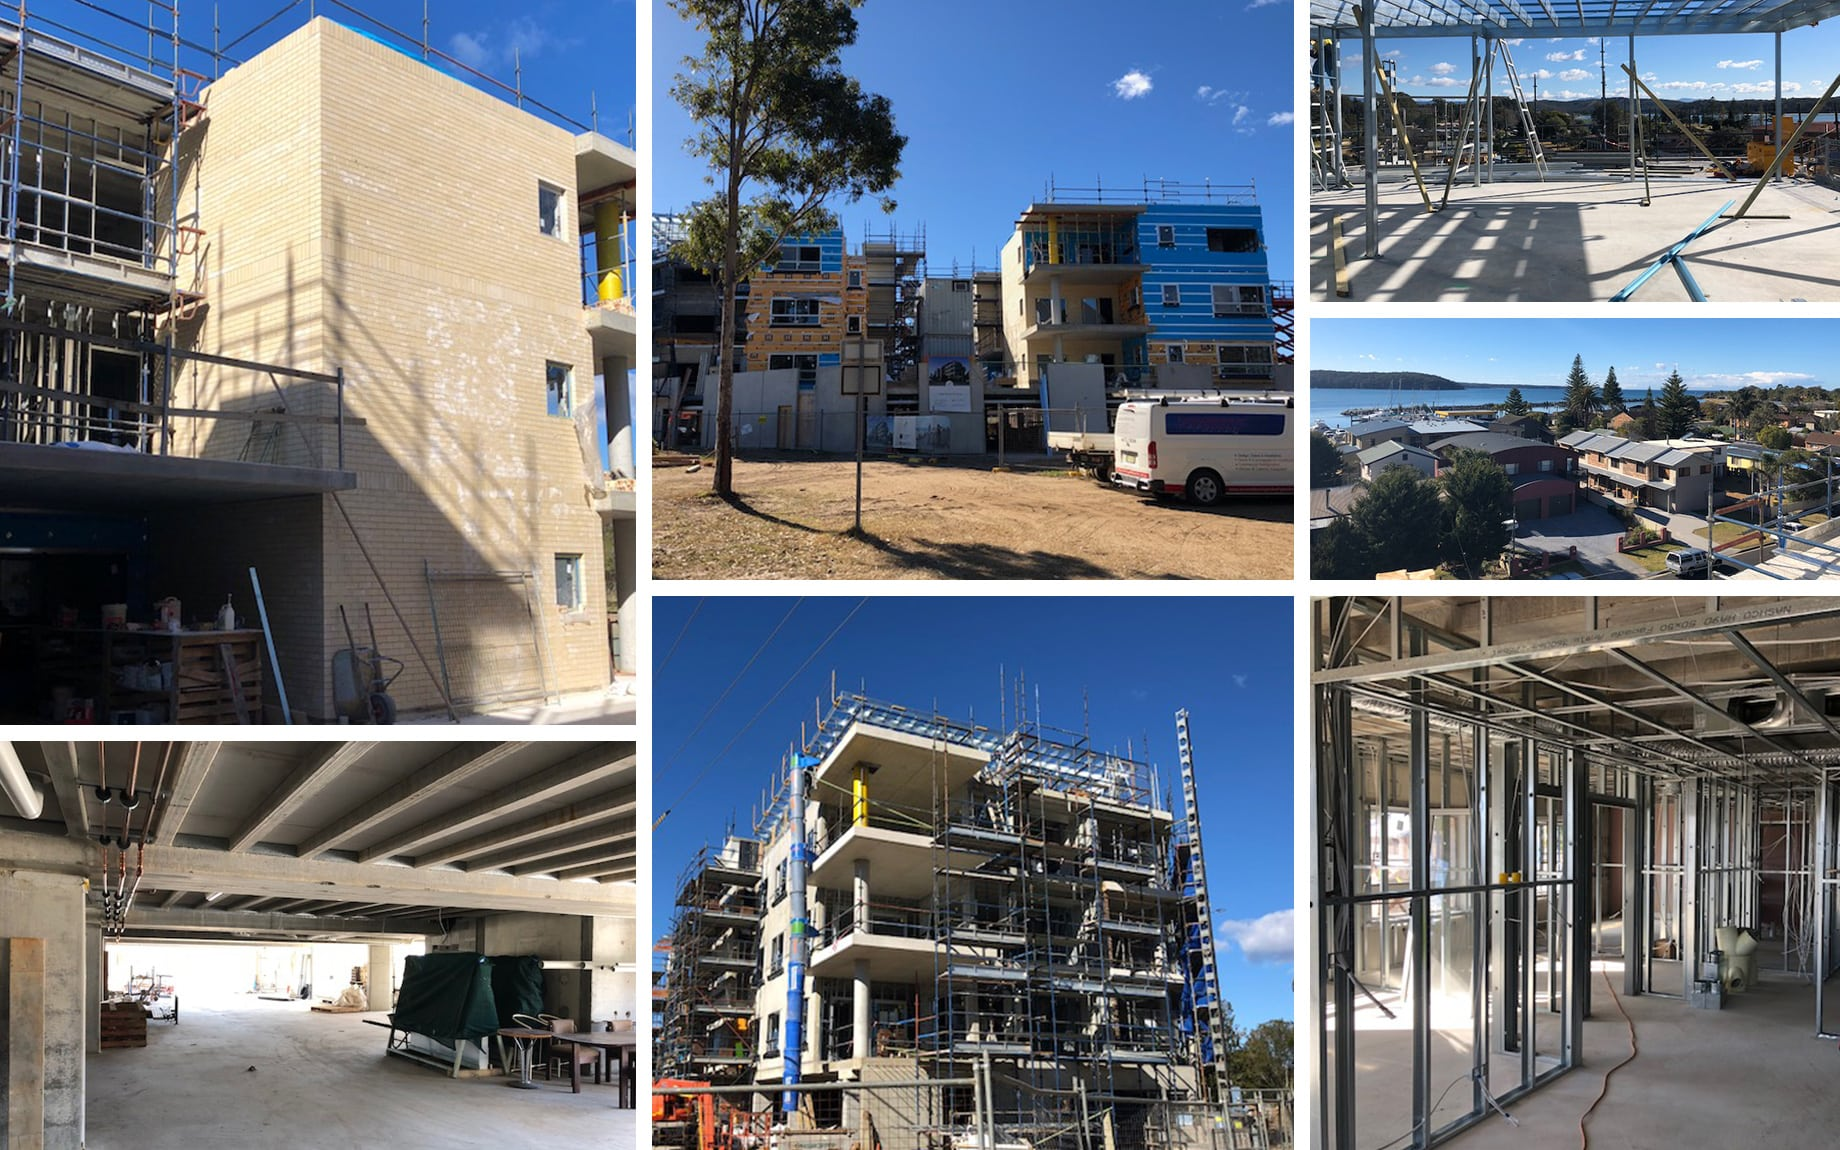 A mosaic of multiple images, showing the progress on the construction of the golf links drive apartments and the views of the bay